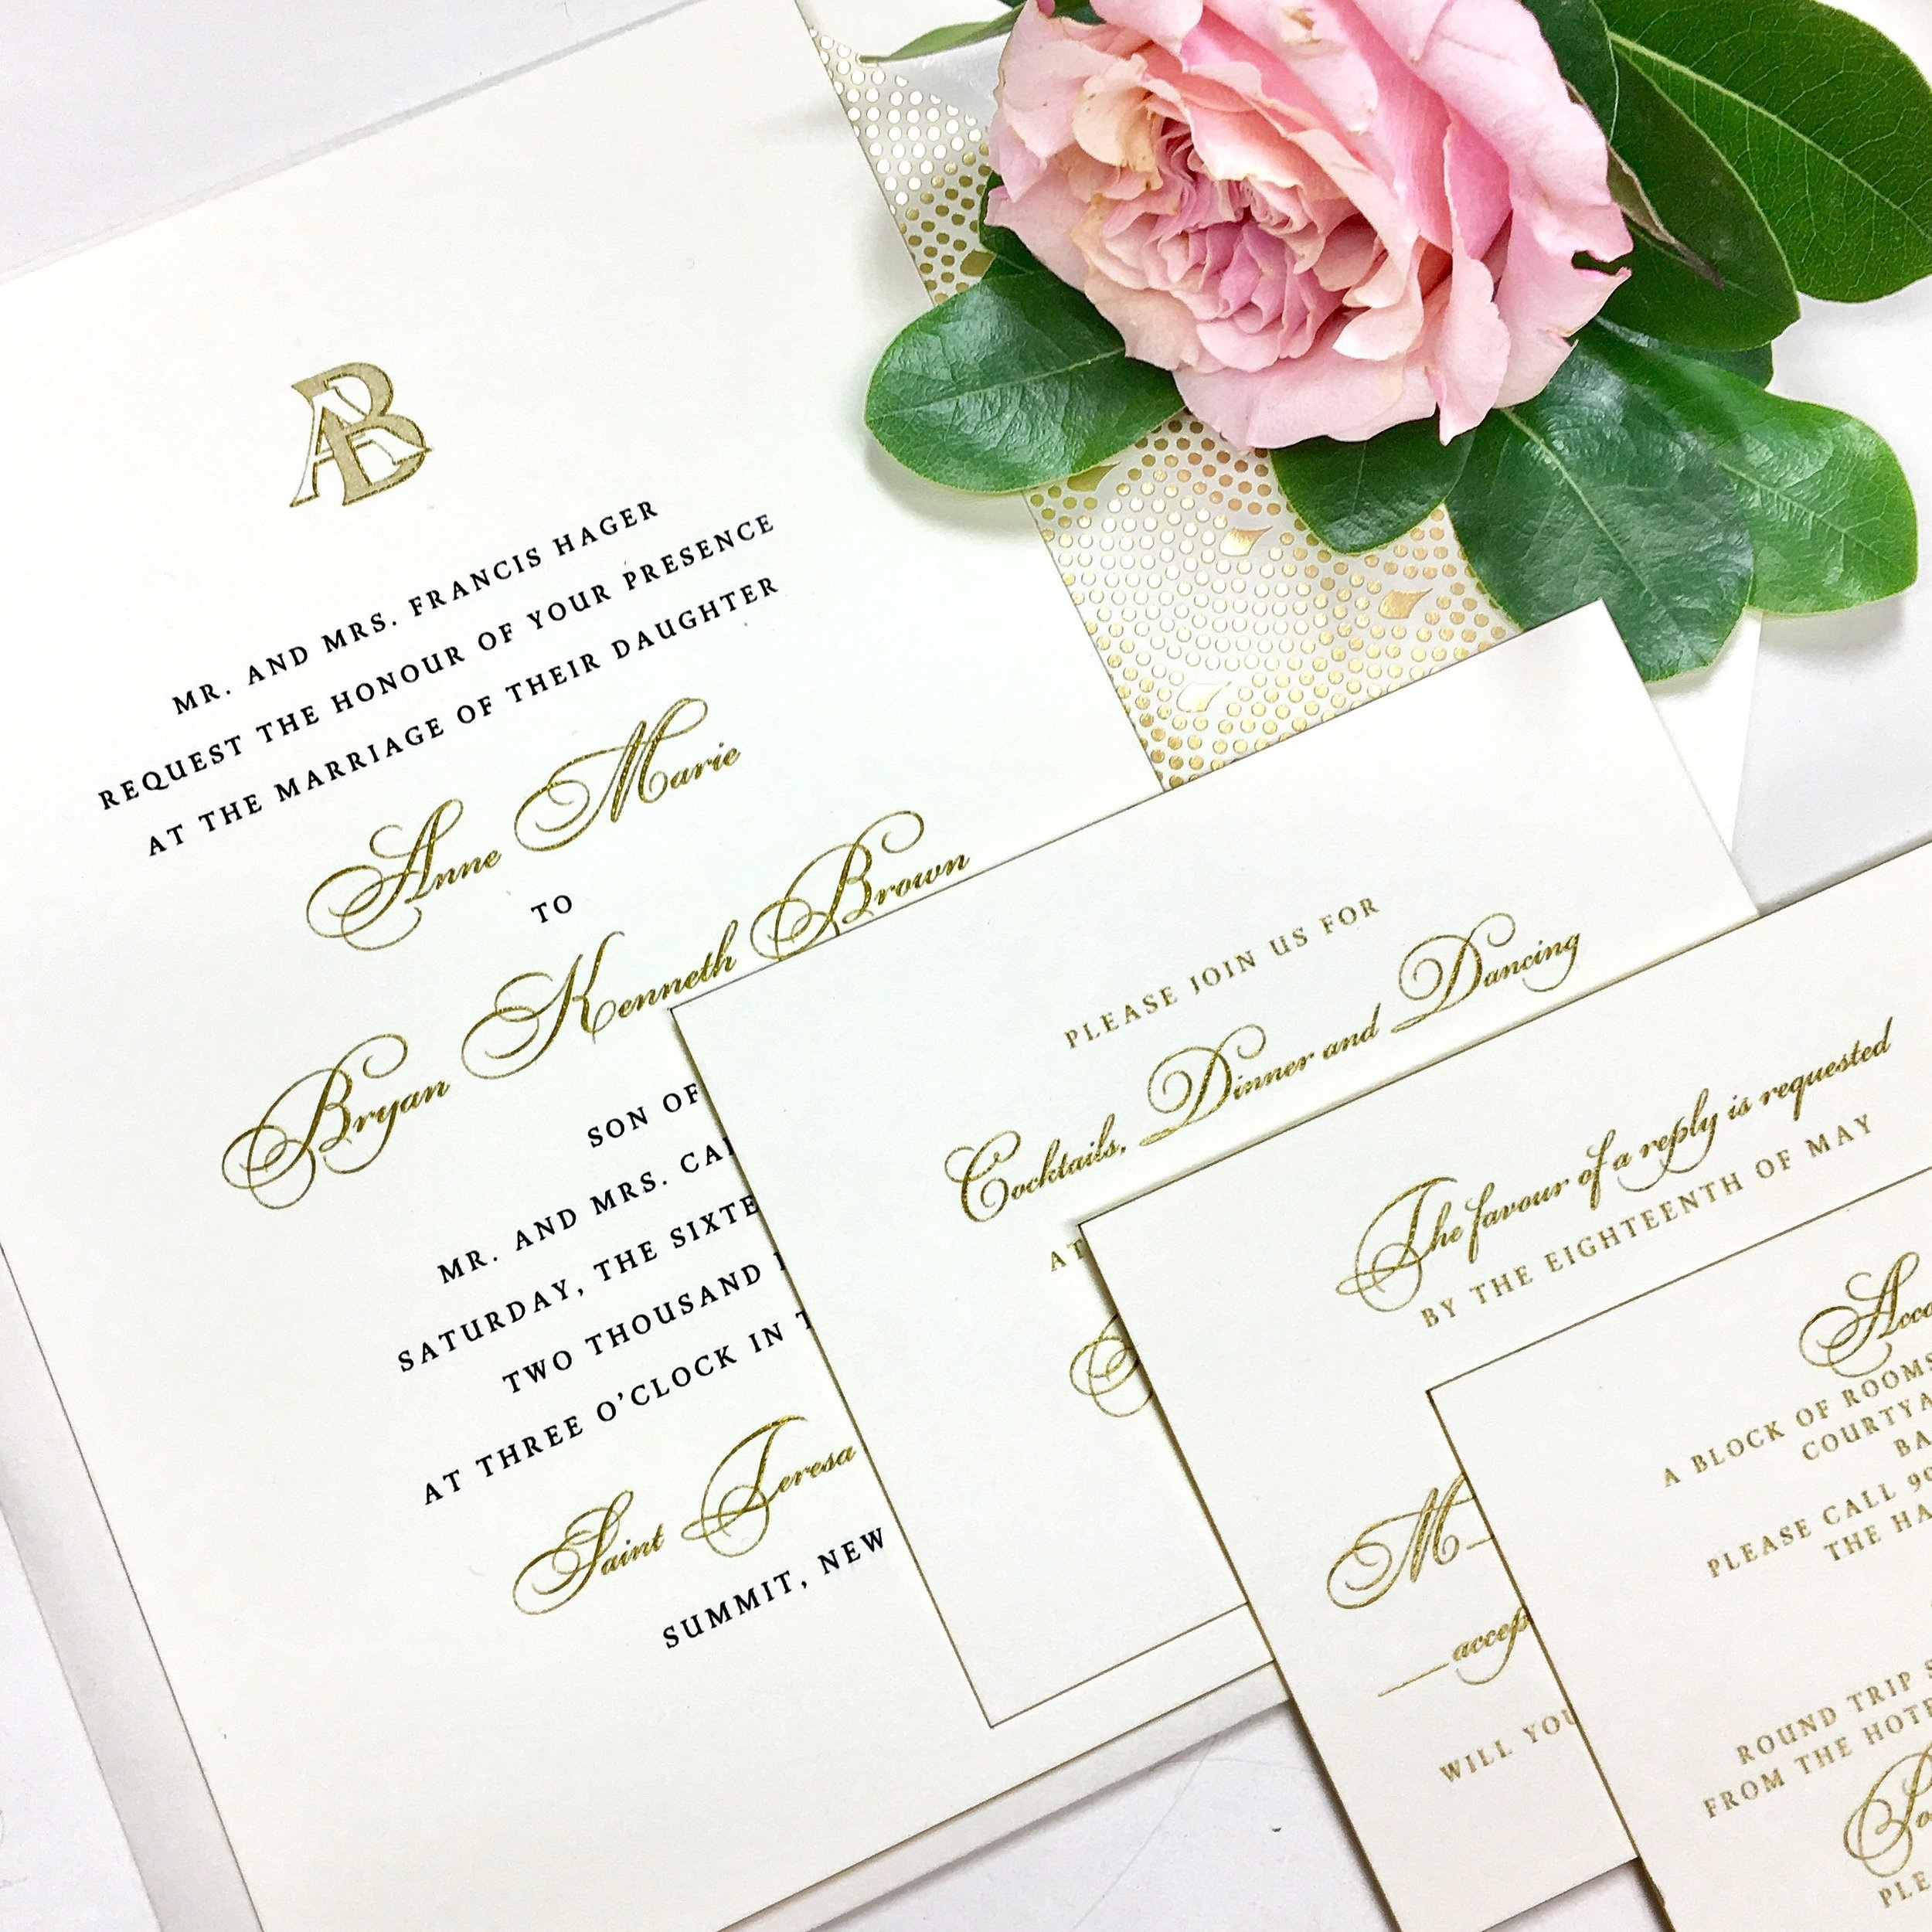 annie wedding invite.JPG